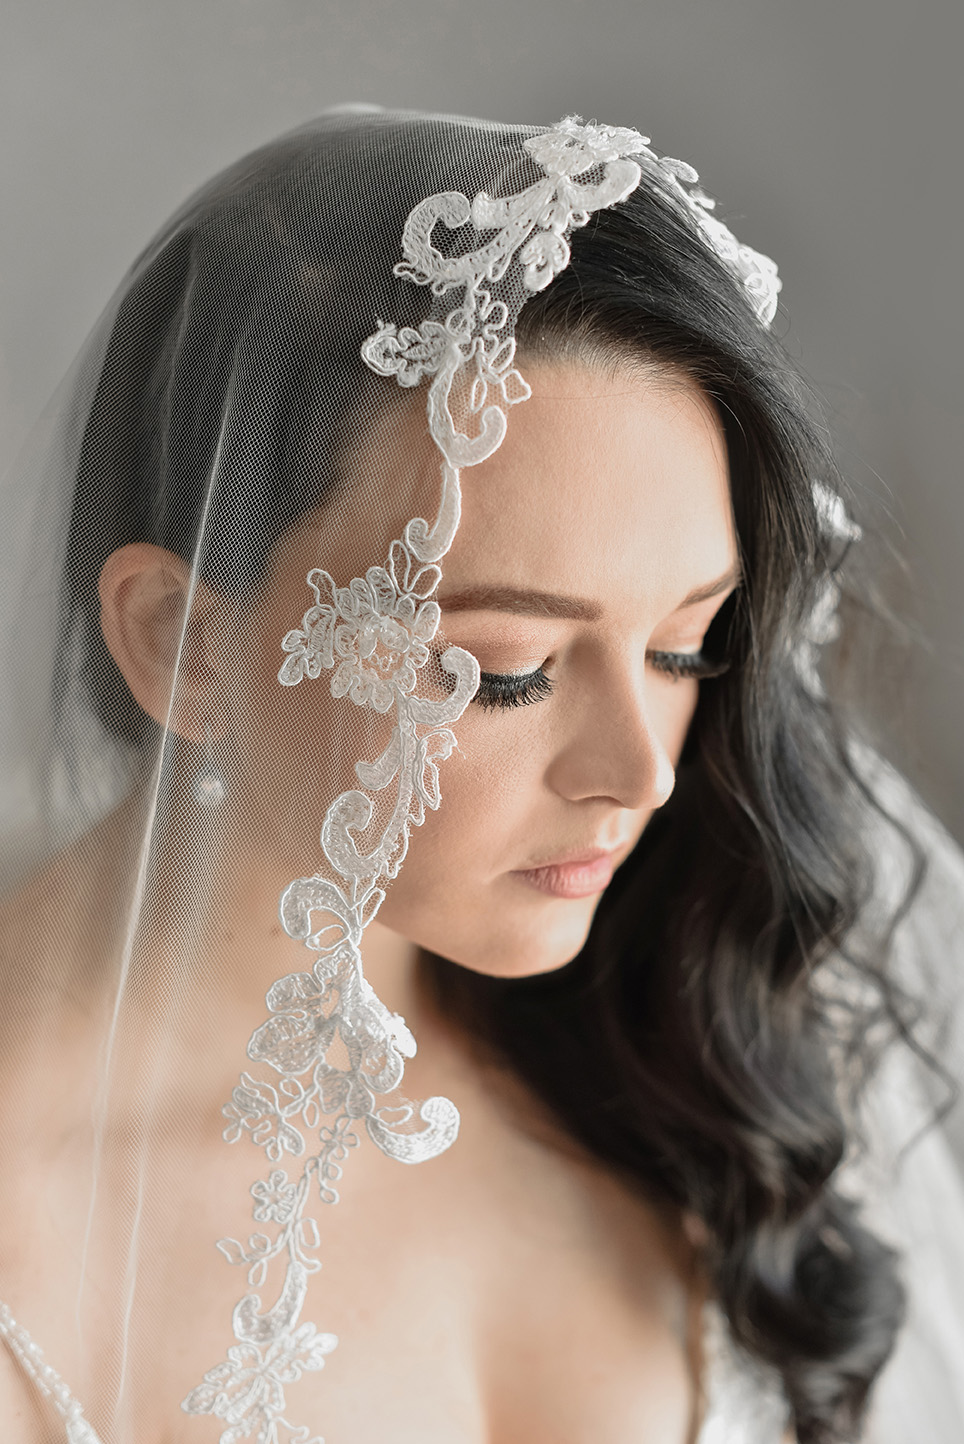 Curly Lace Veil (Rental Only)